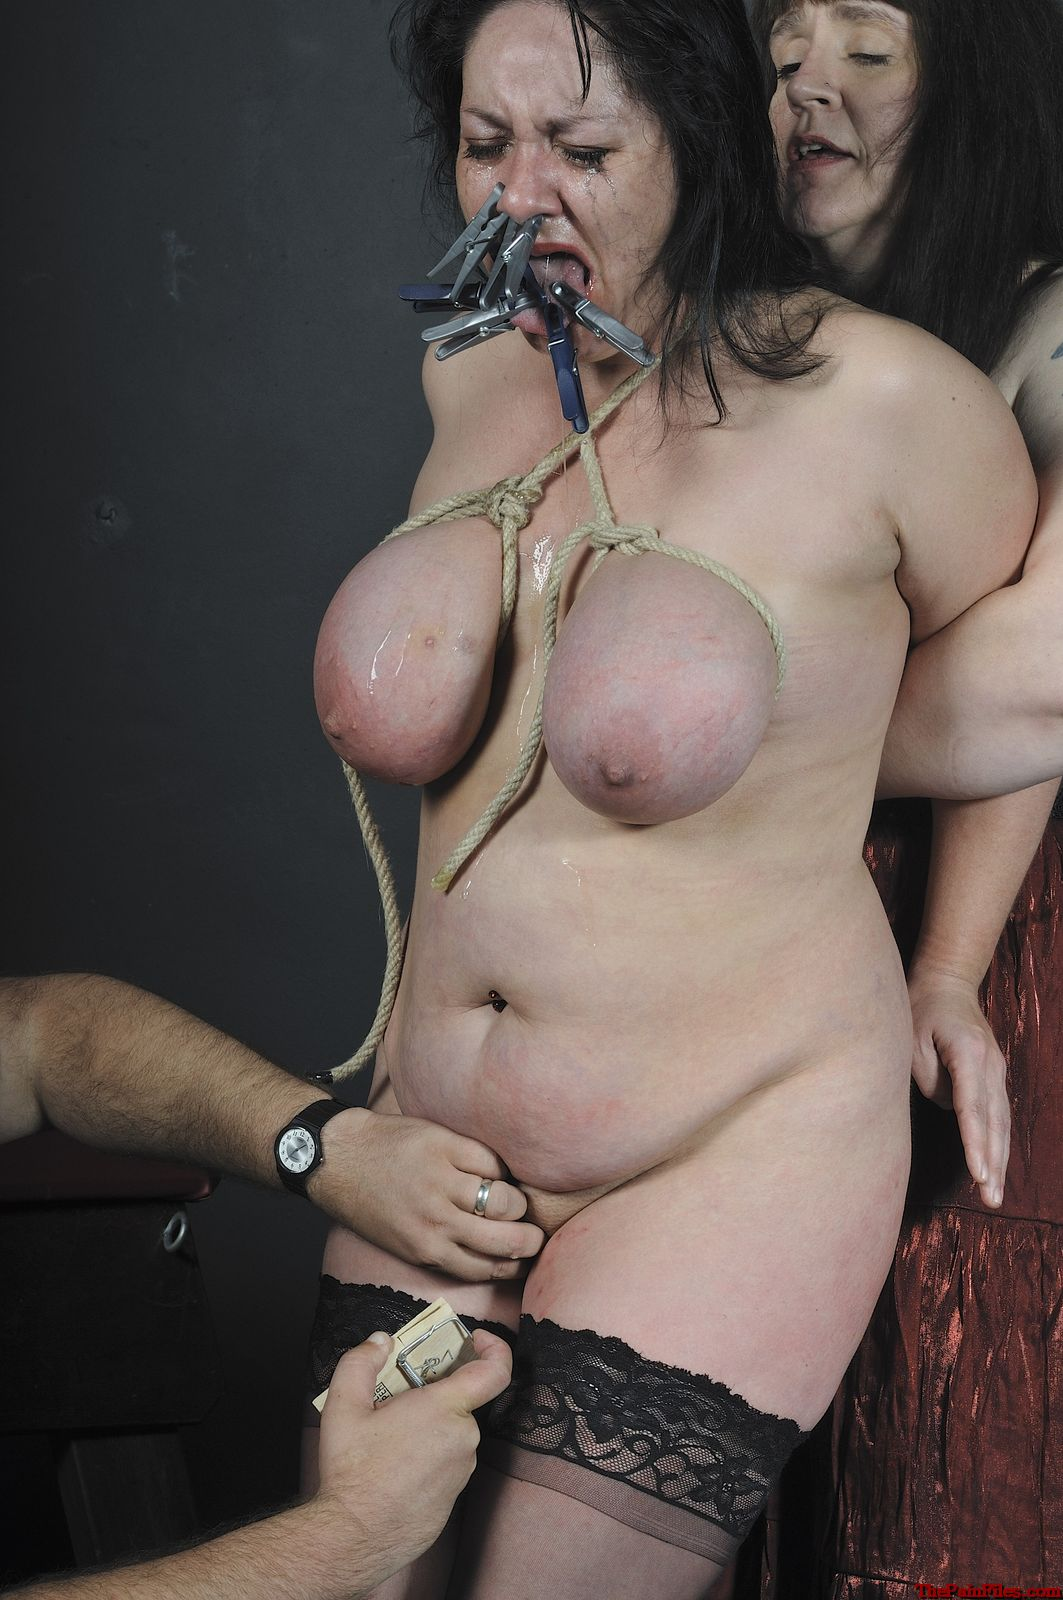 Agree bbw torture bondage can